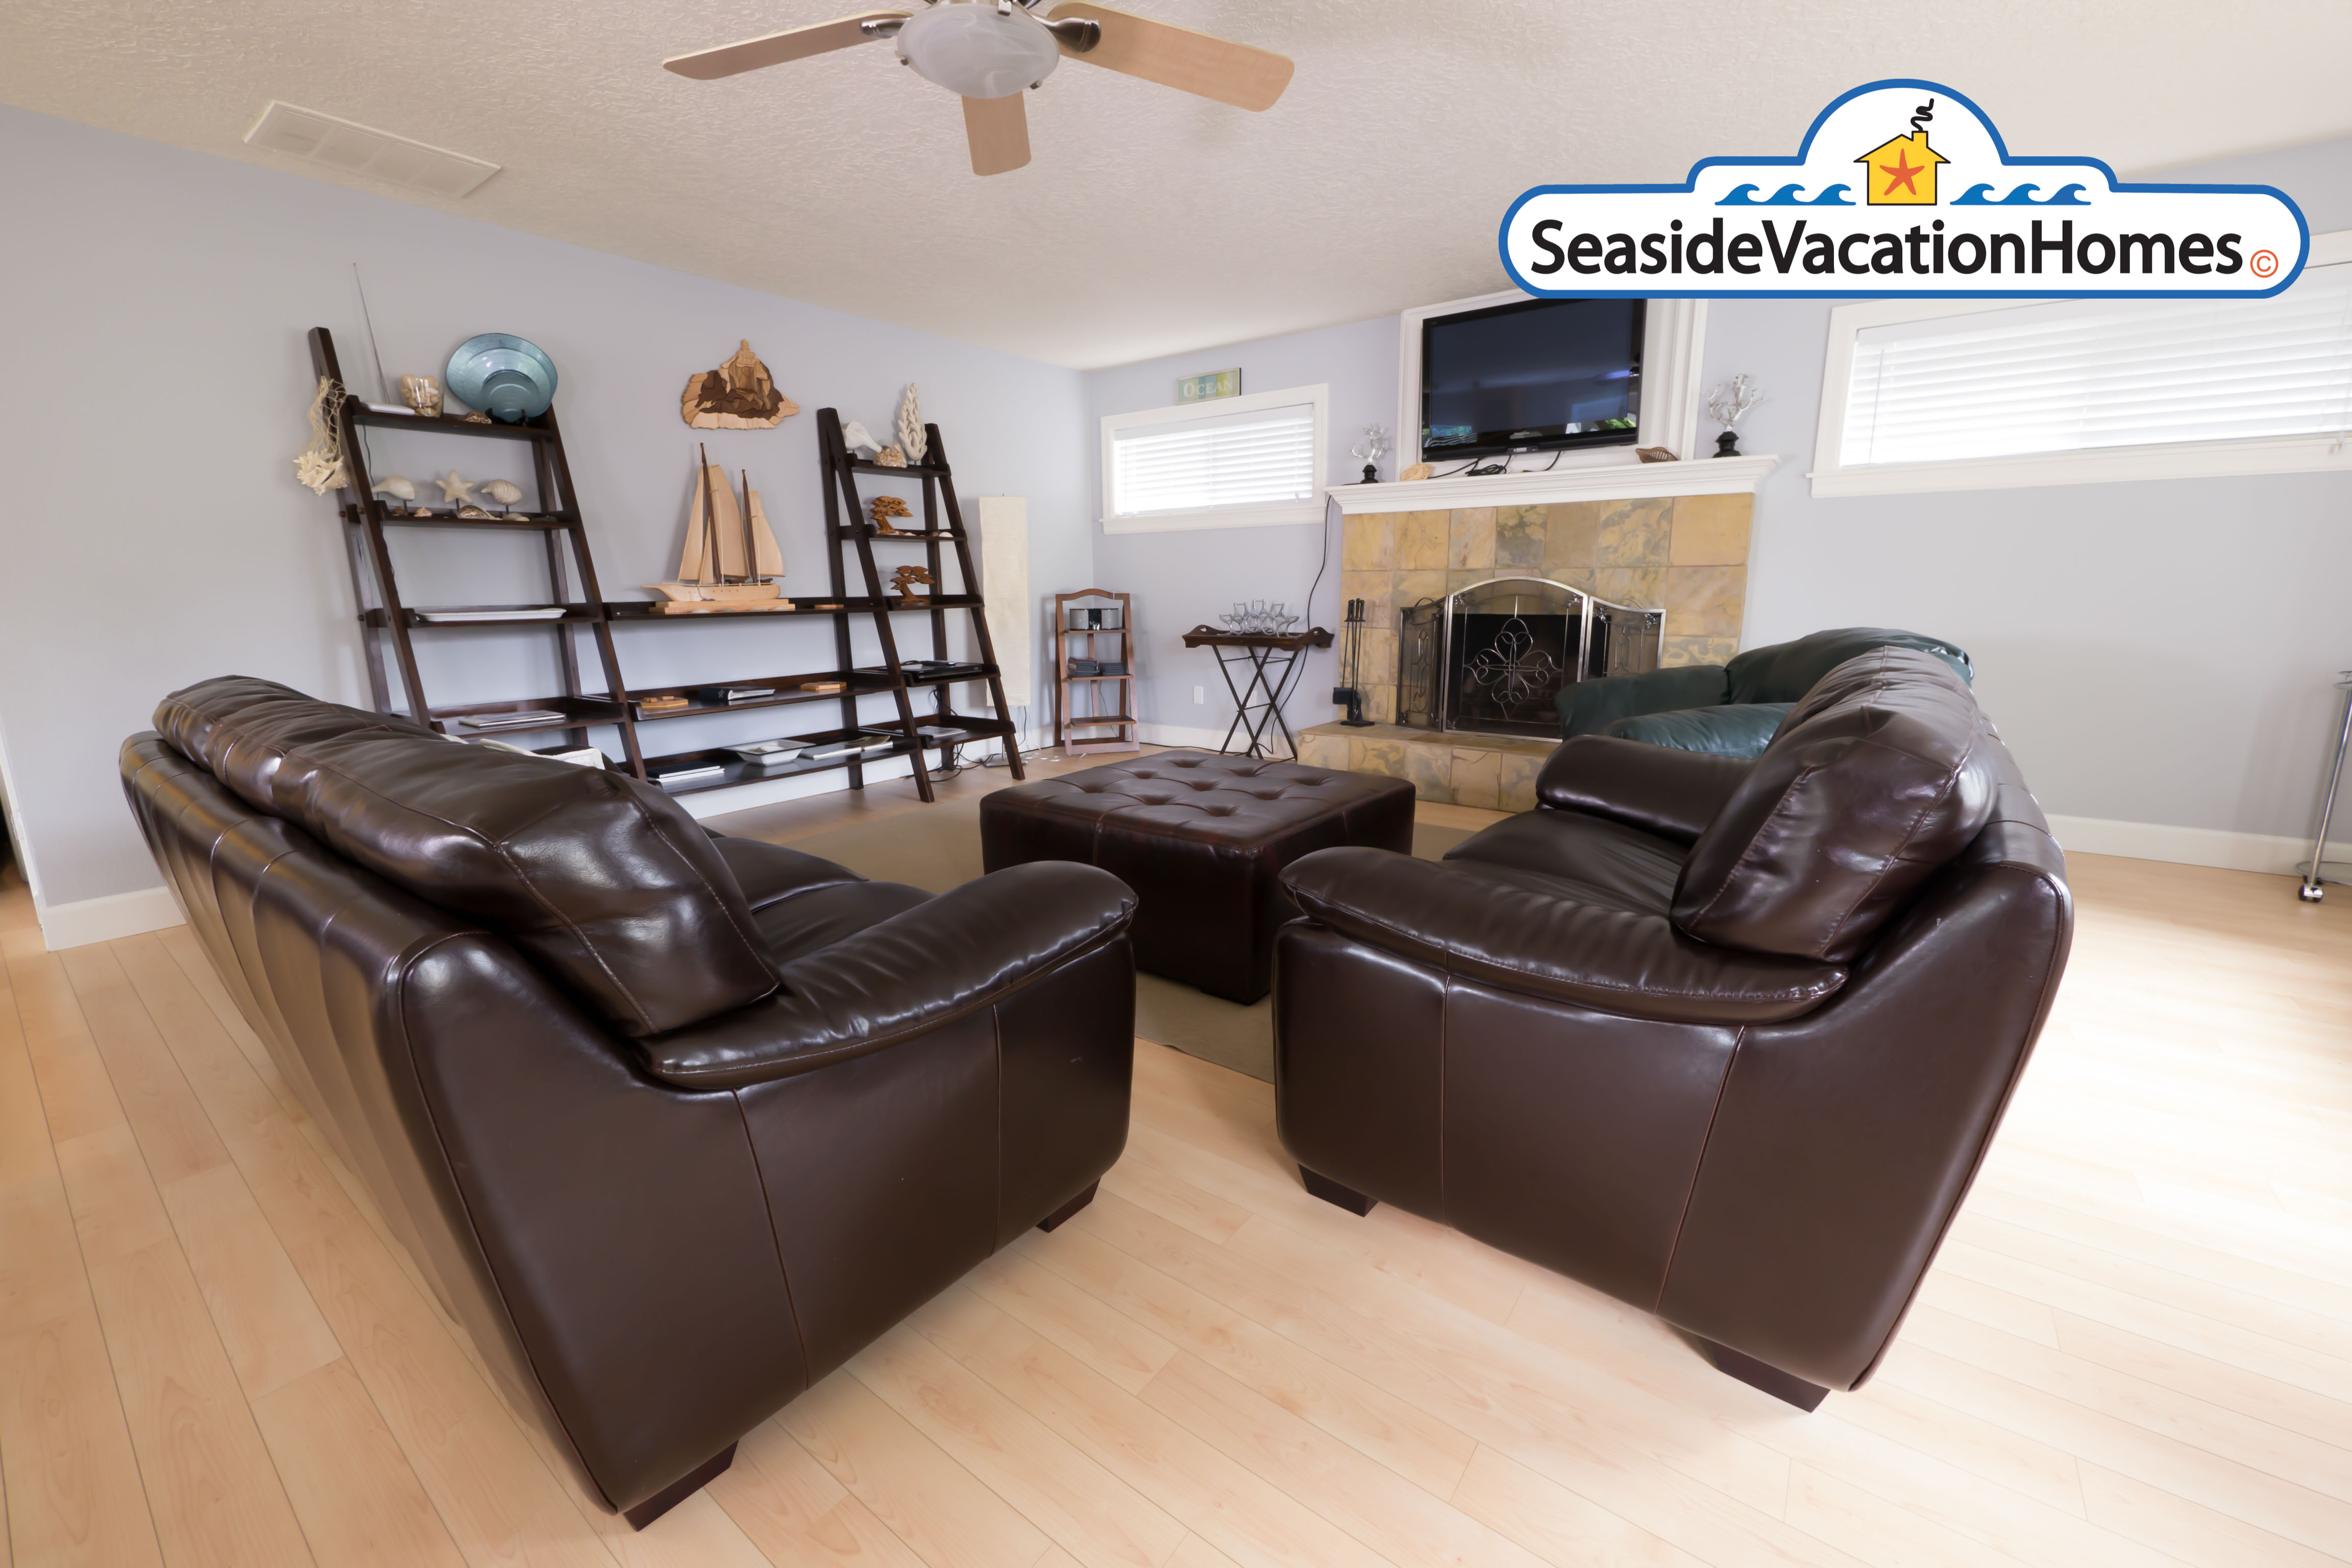 Vacation Home Rentals in Seaside, OR